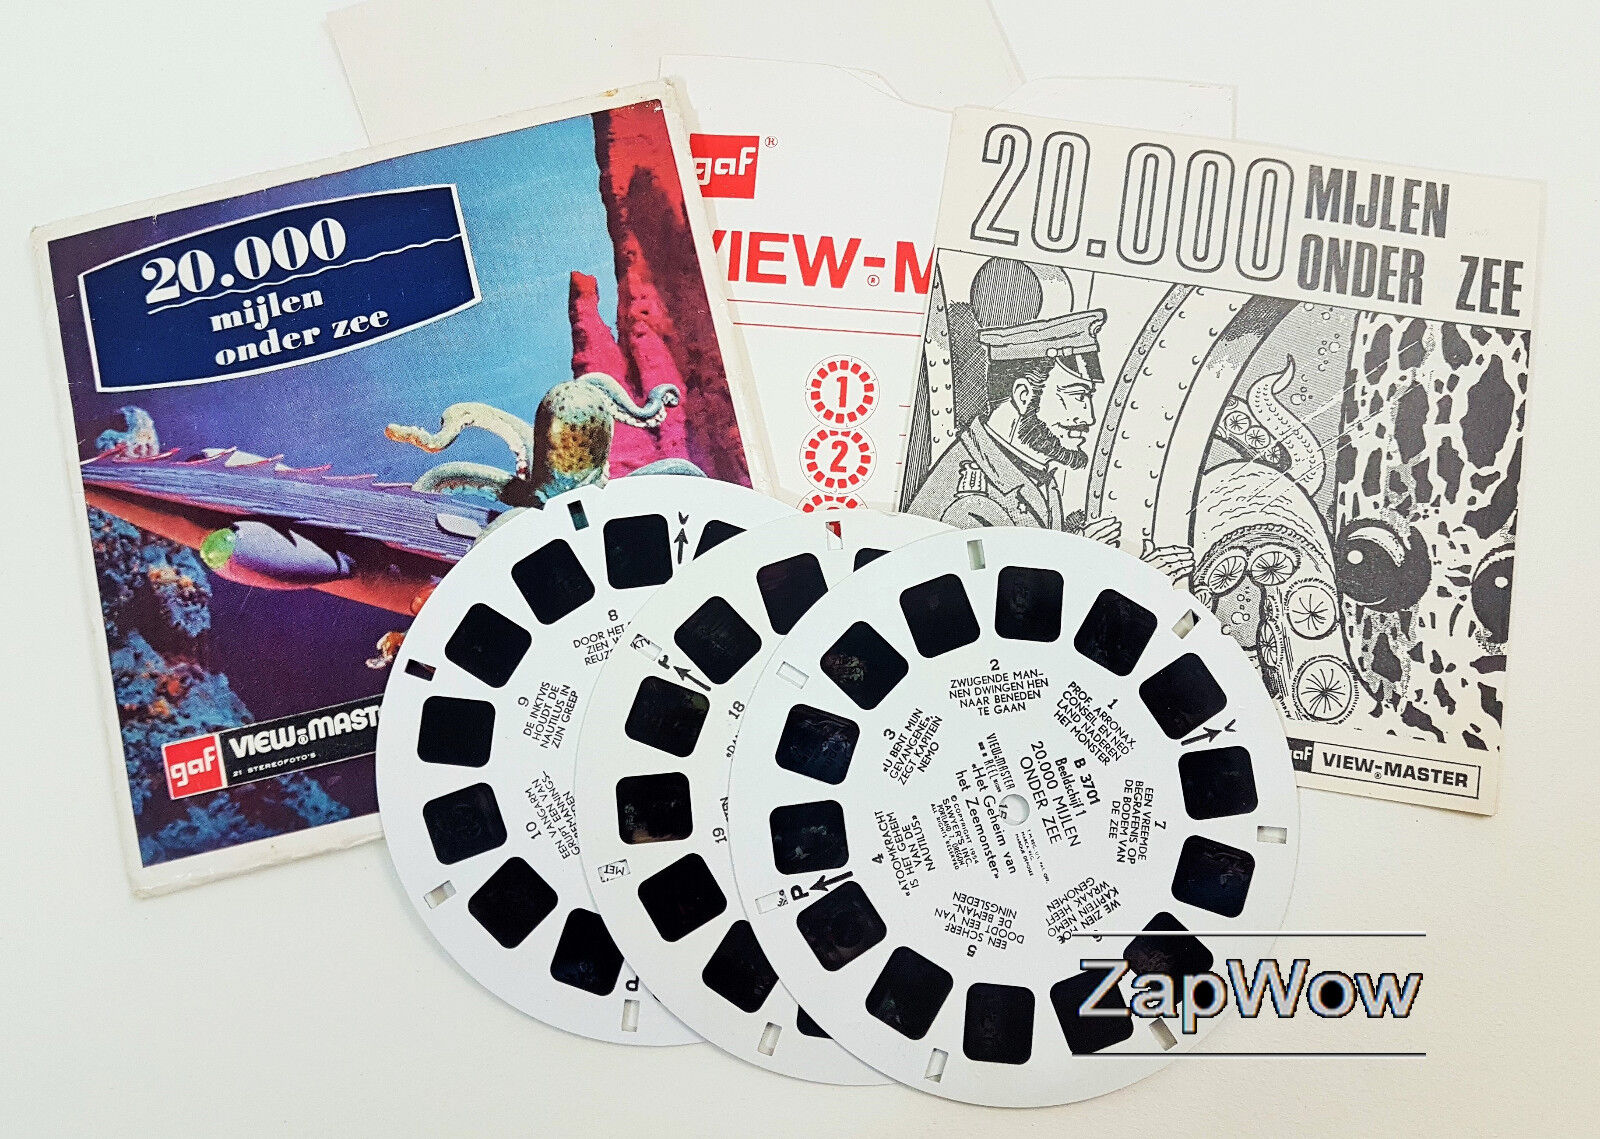 20,000 MIJLEN ONDER ZEE VIEWMASTER 1950s Story Reels Set B370 Dutch League Sea